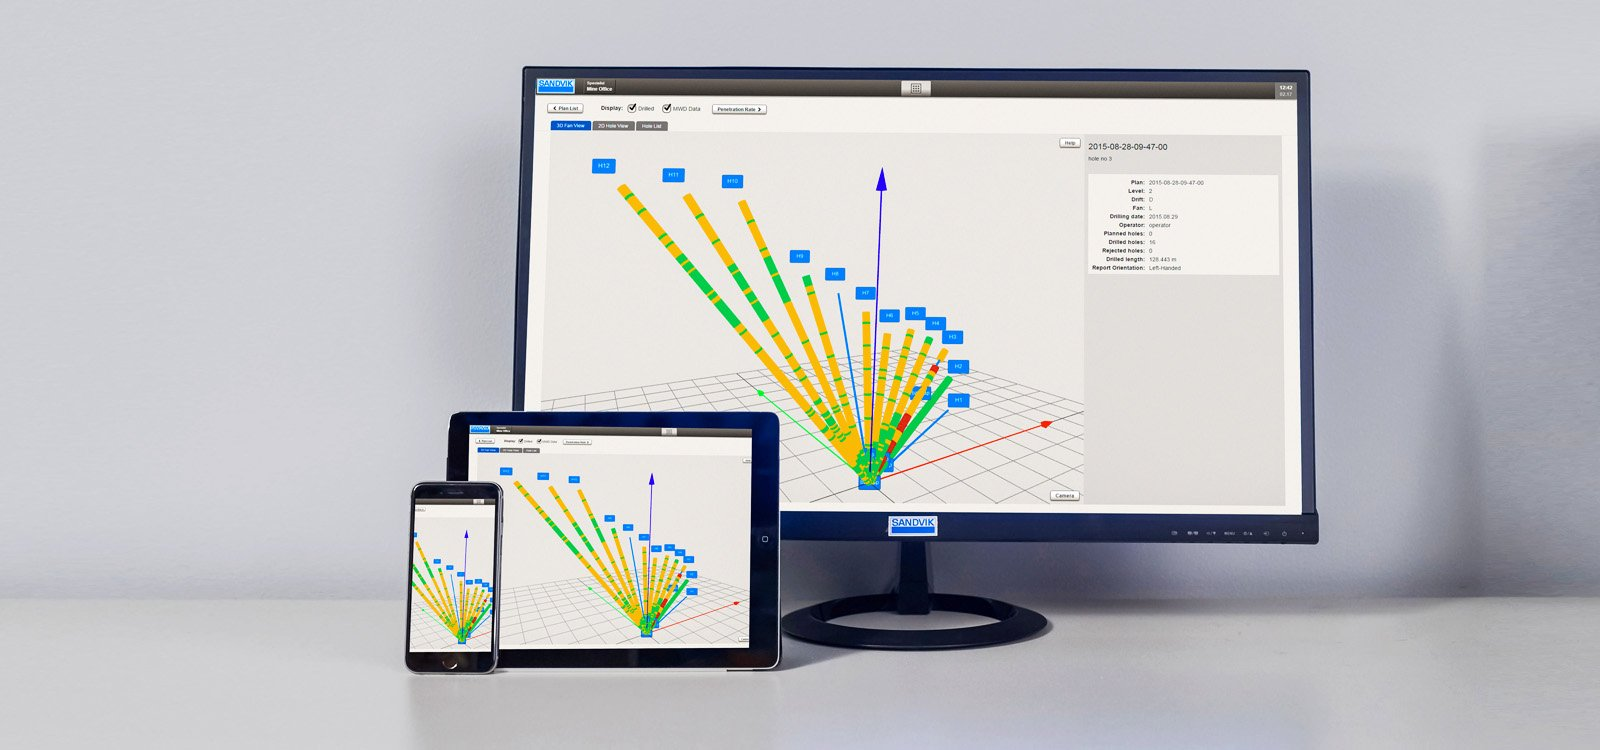 <p>The newest Sandvik OptiMine offerings provide three dimensional models of the mine in real time, which help to streamline planning.</p>